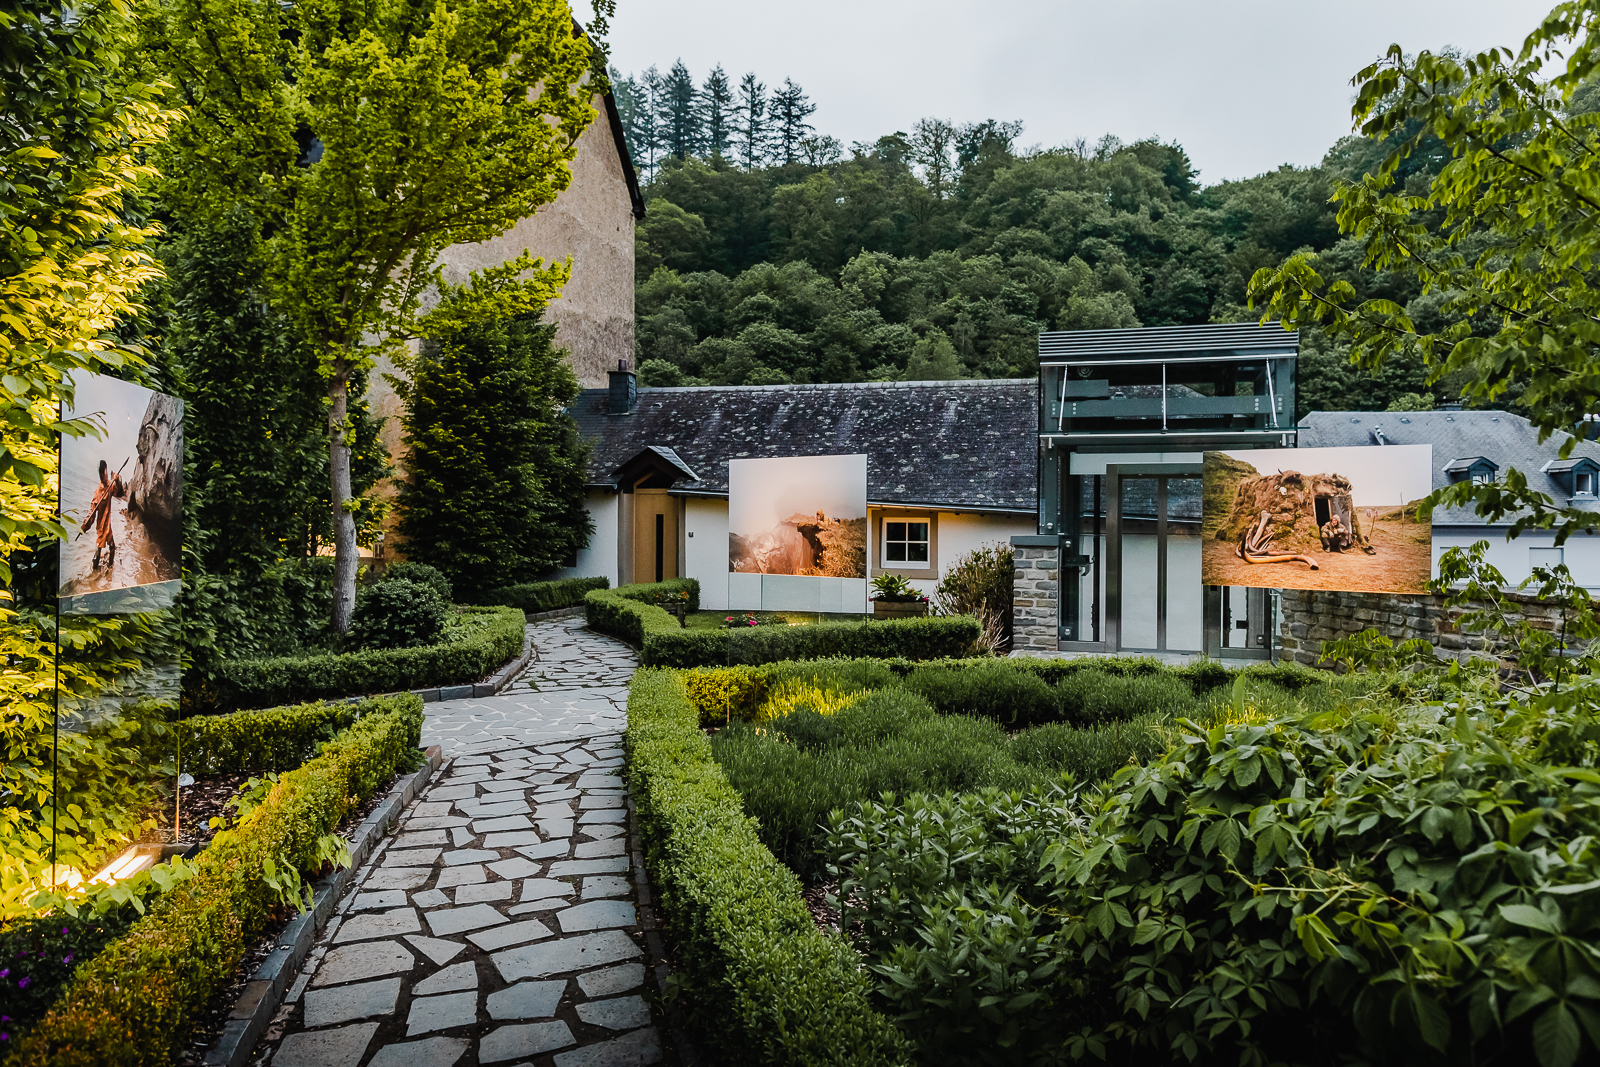 Photo expo at Clervaux castle